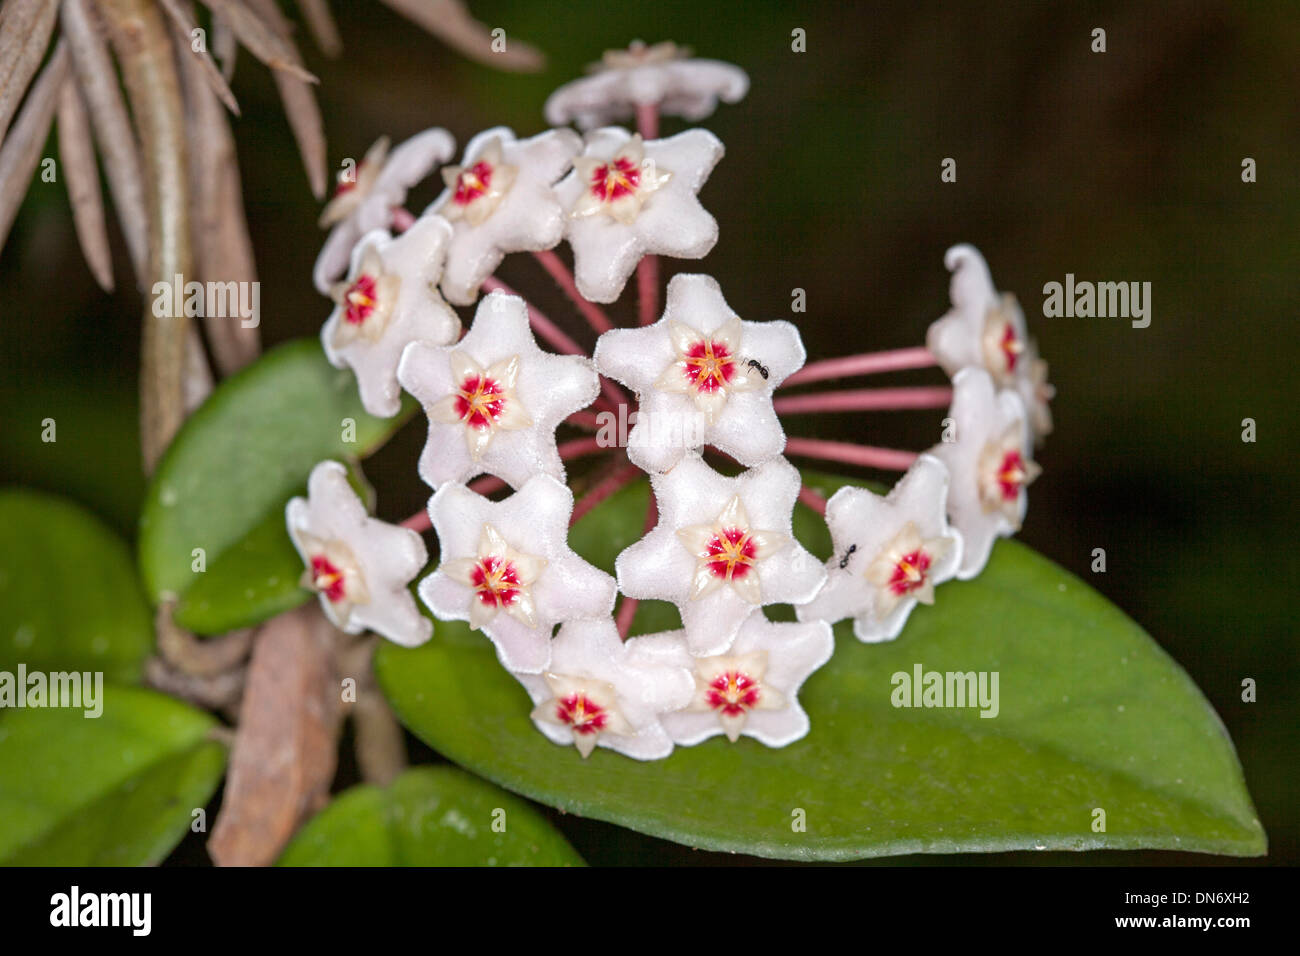 Cluster Of Attractive Red And White Flowers And Green Leaves Of Hoya